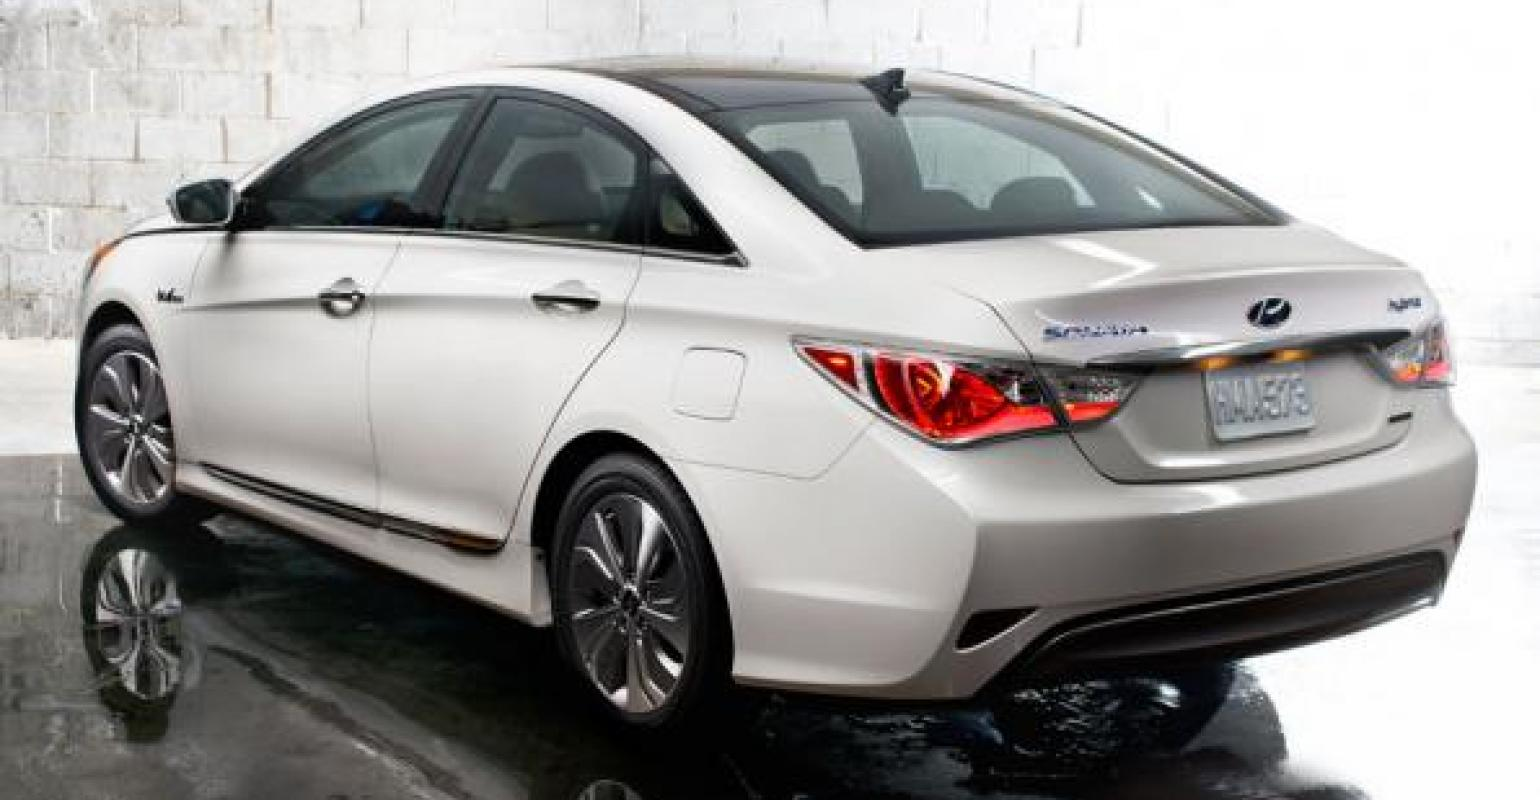 Marvelous Hyundai Boosts Sonata Hybrid For More Power, Fuel Economy